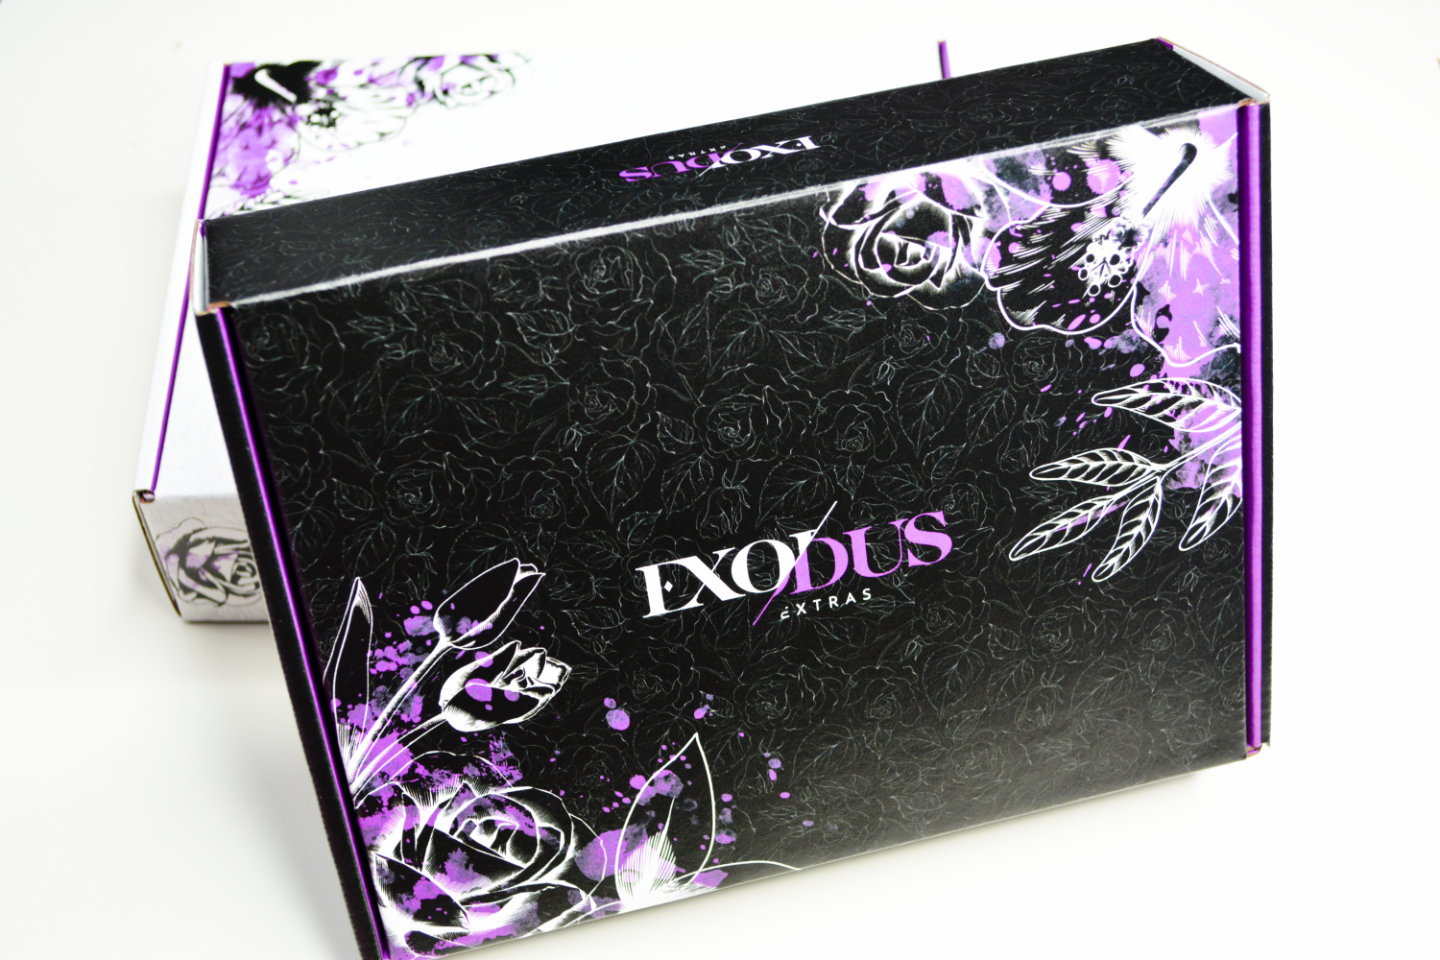 Exodus Extras Subscription Box mens black closed box front view